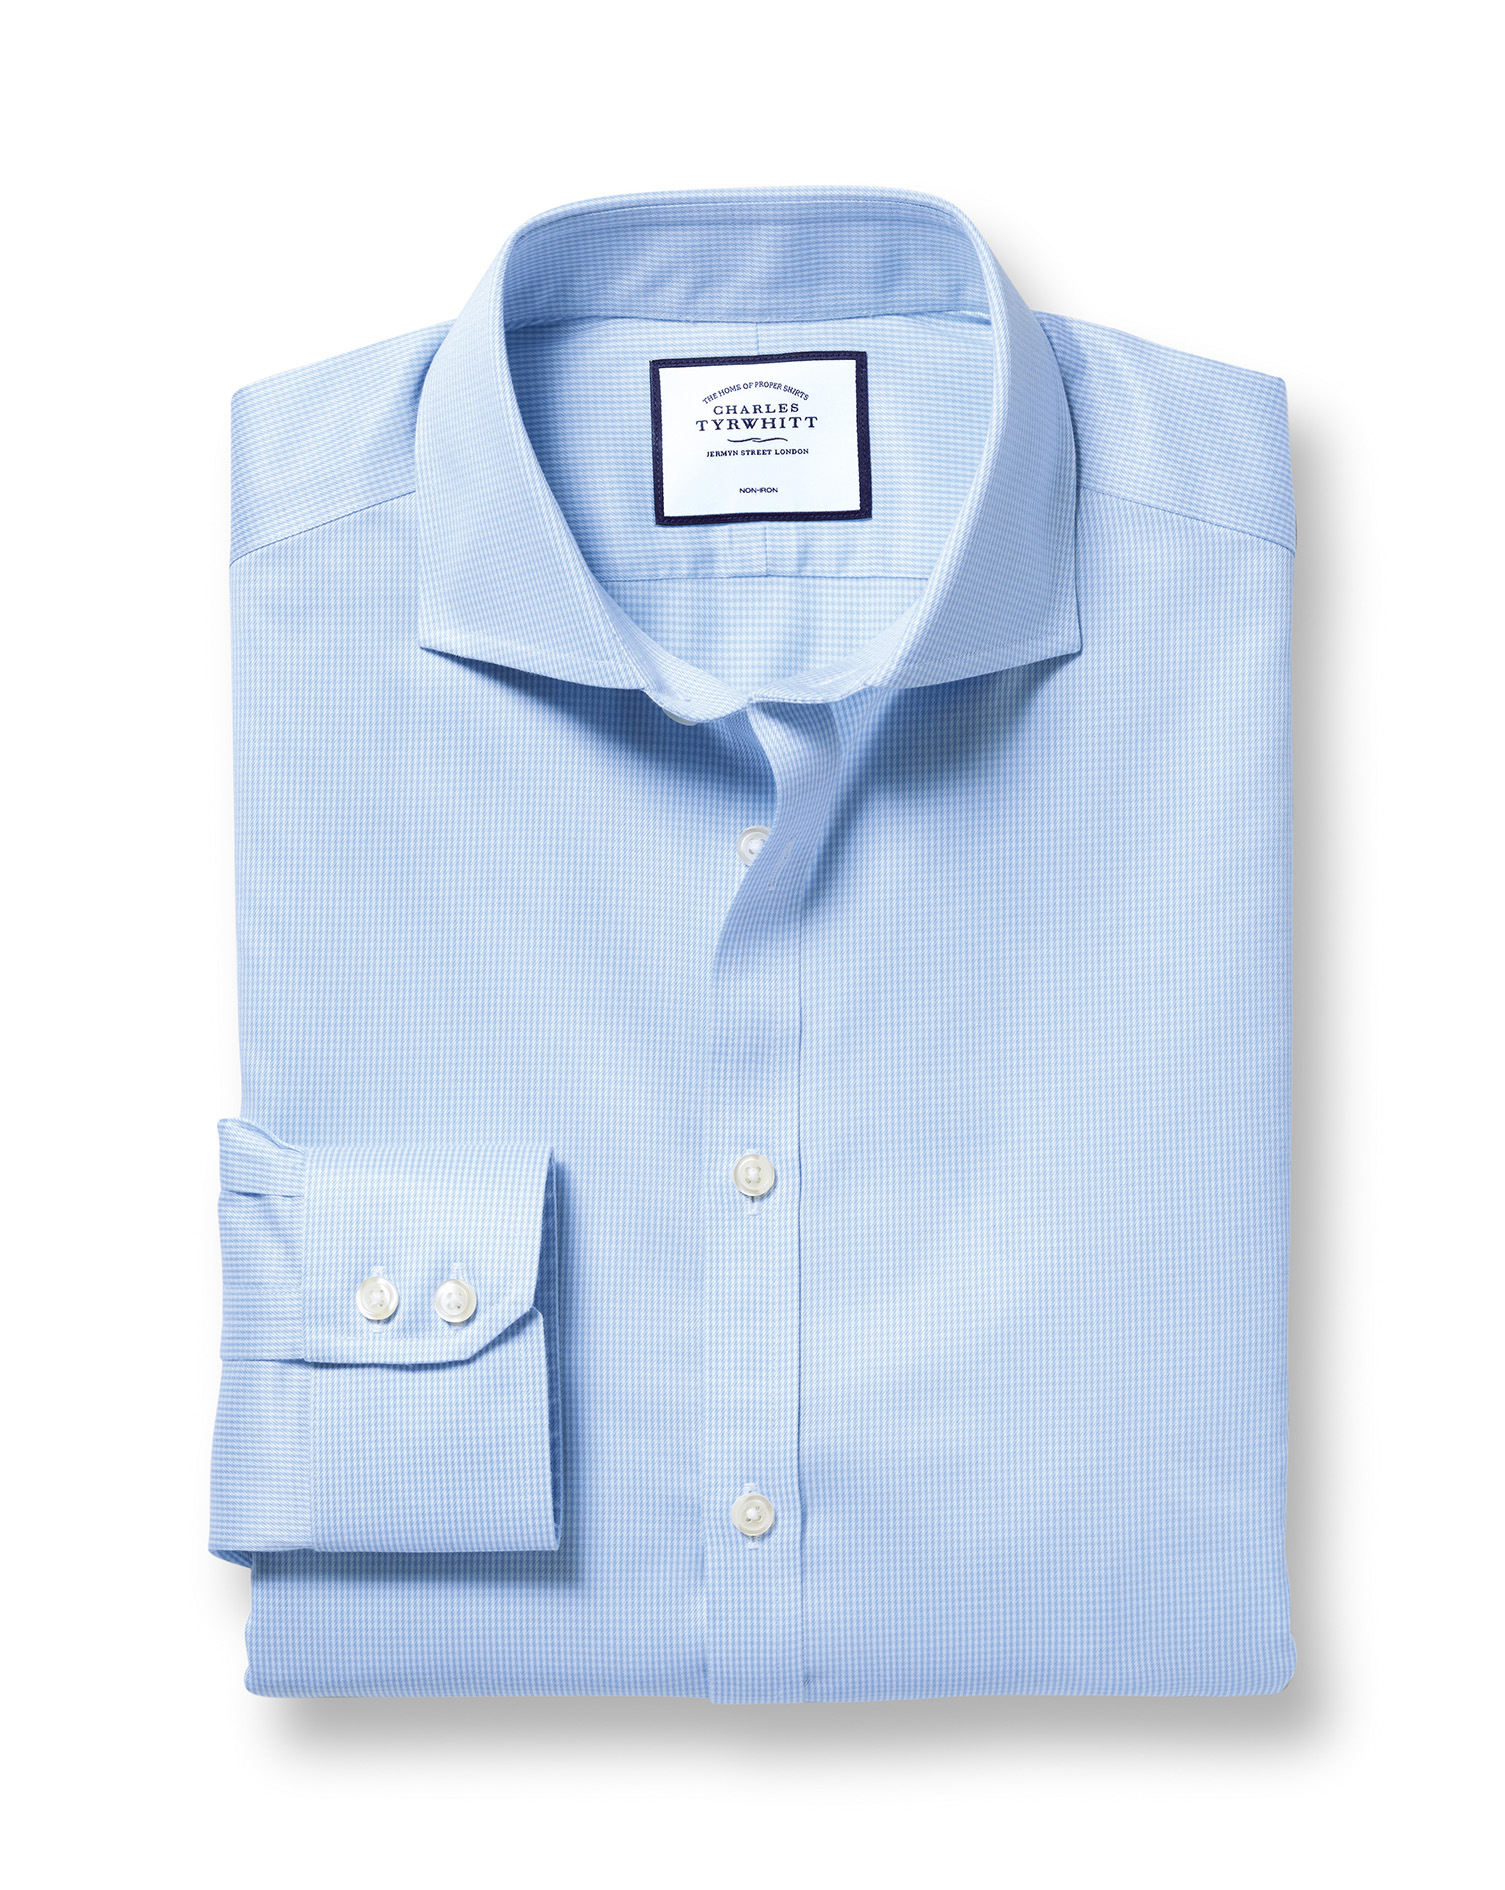 Slim Fit Cutaway Non-Iron Puppytooth Sky Blue Cotton Formal Shirt Single Cuff Size 18/36 by Charles